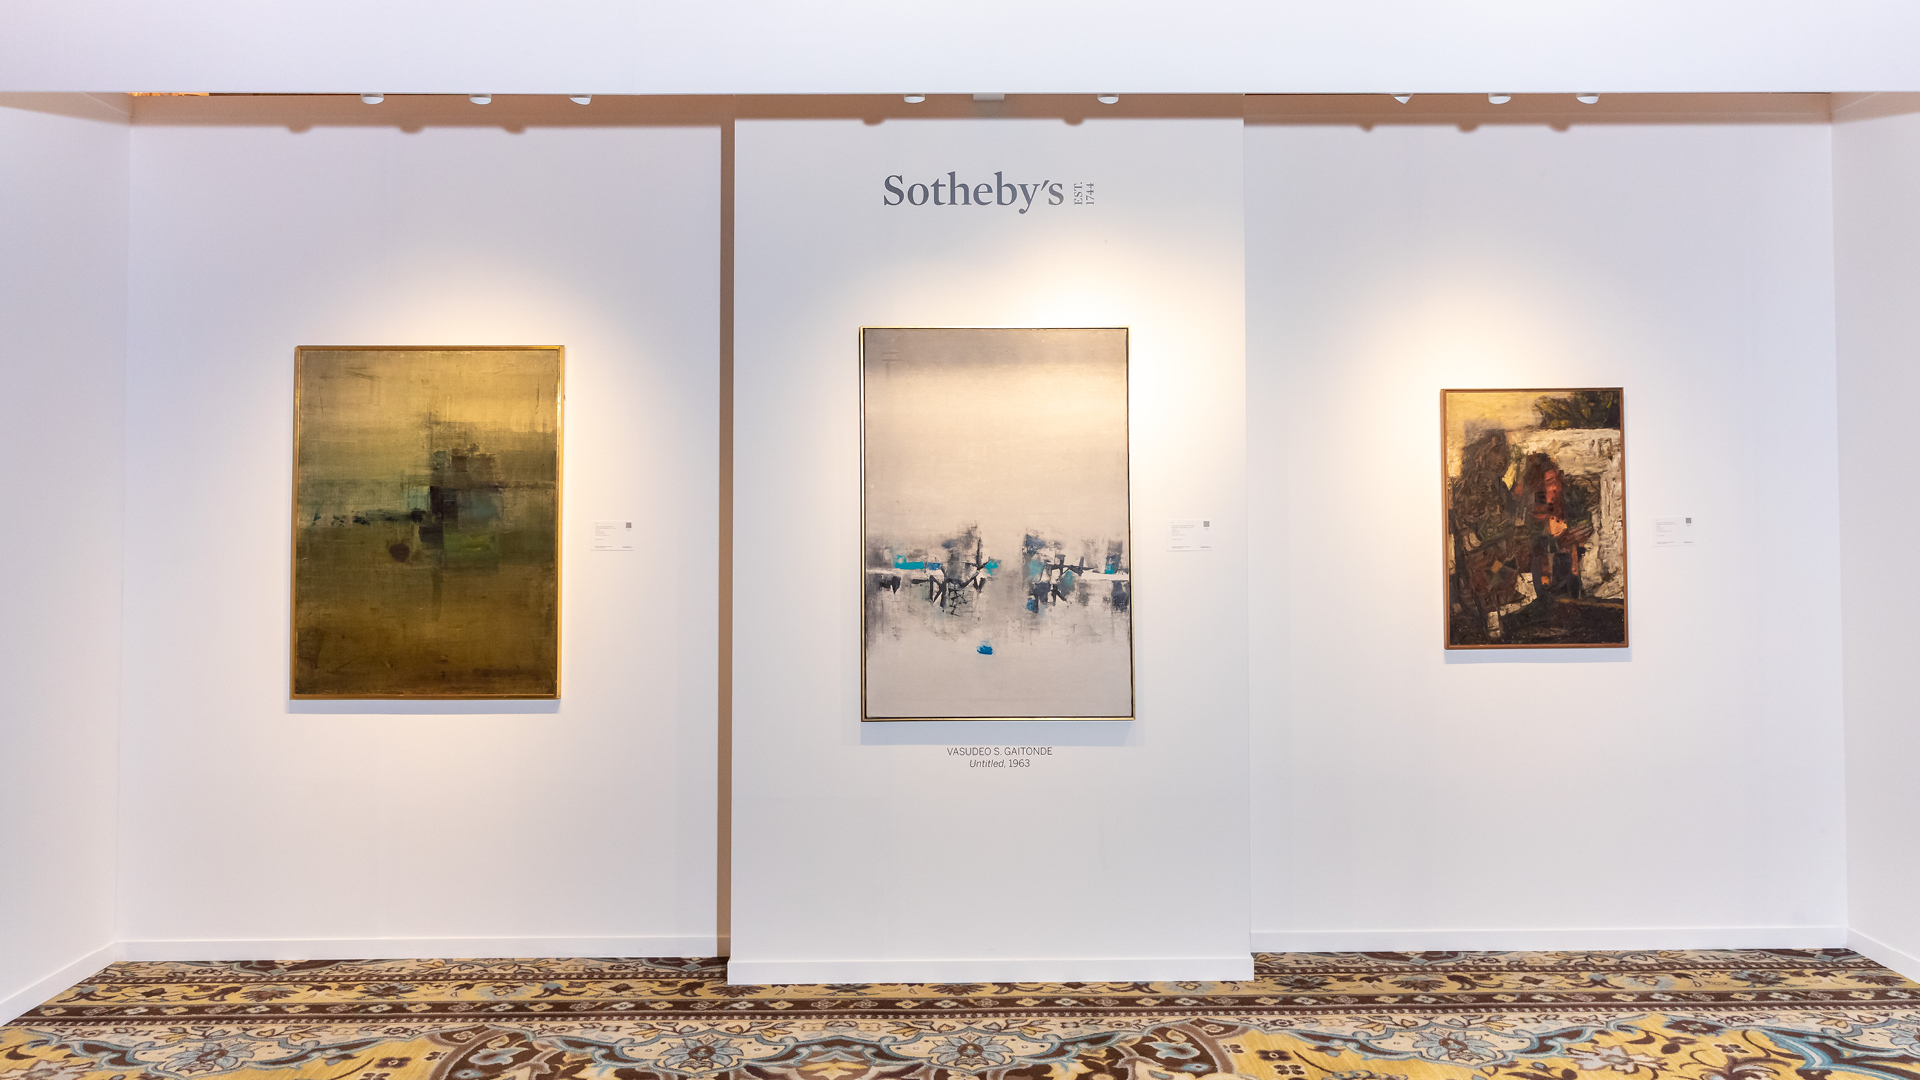 Left to Right: Nasreen Mohamedi's 'Untitled', VS Gaitonde's 'Untitled', MF Hussain's 'Mehndi' | Sotheby's | Nasreen Mohamedi, VS Gaitonde, MF Hussain | STIRworld